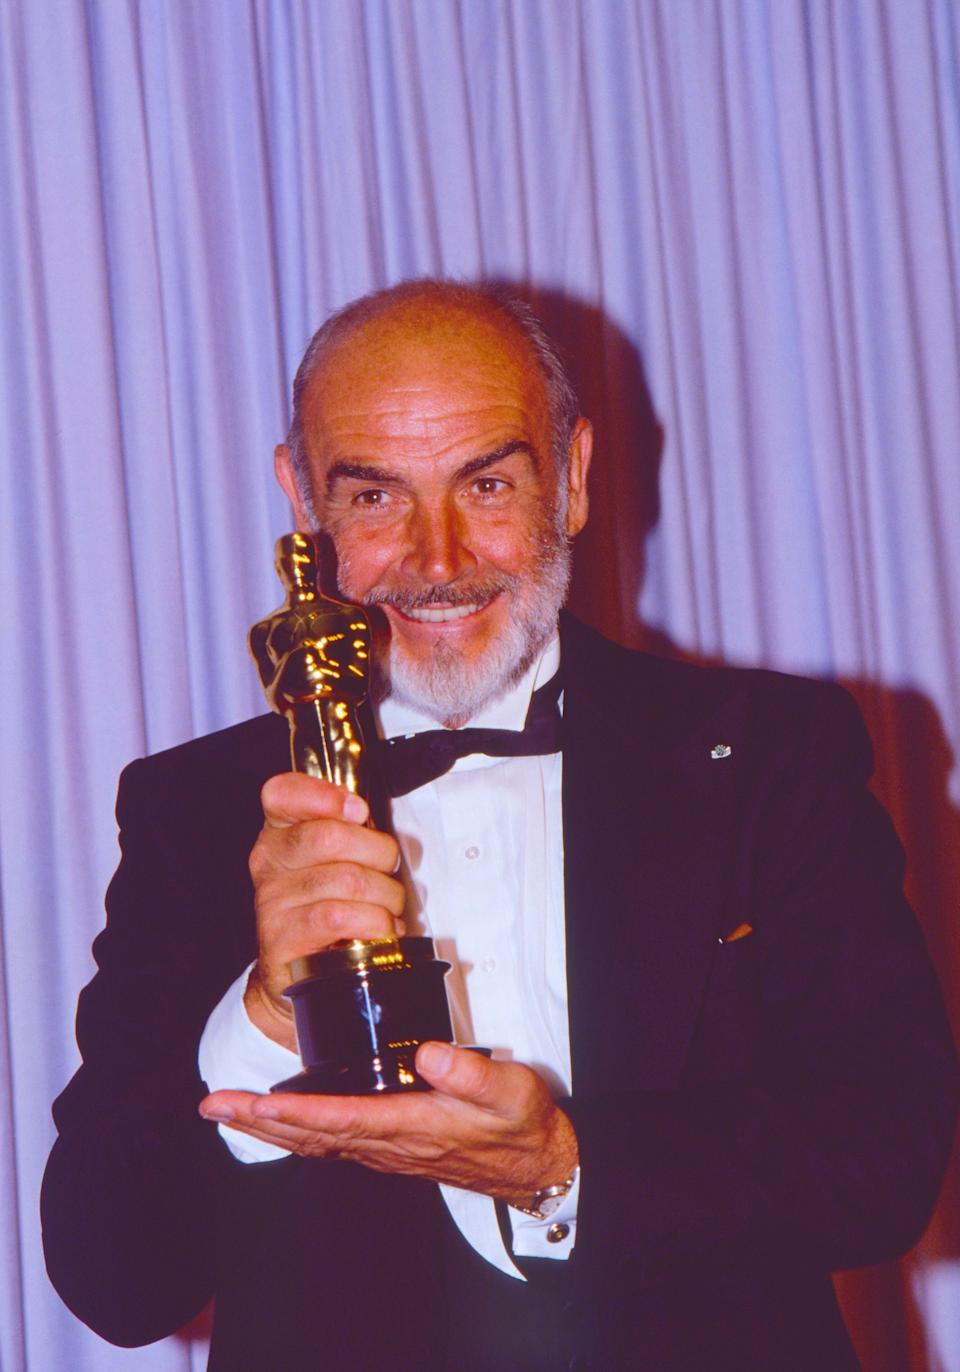 Sean Connery with his Best Supporting Actor Oscar for his role in The Untouchables at the 60th Annual Academy Awards in Los Angeles, 11 Apr 1988 (Photo: Elisa Leonelli/Shutterstock)